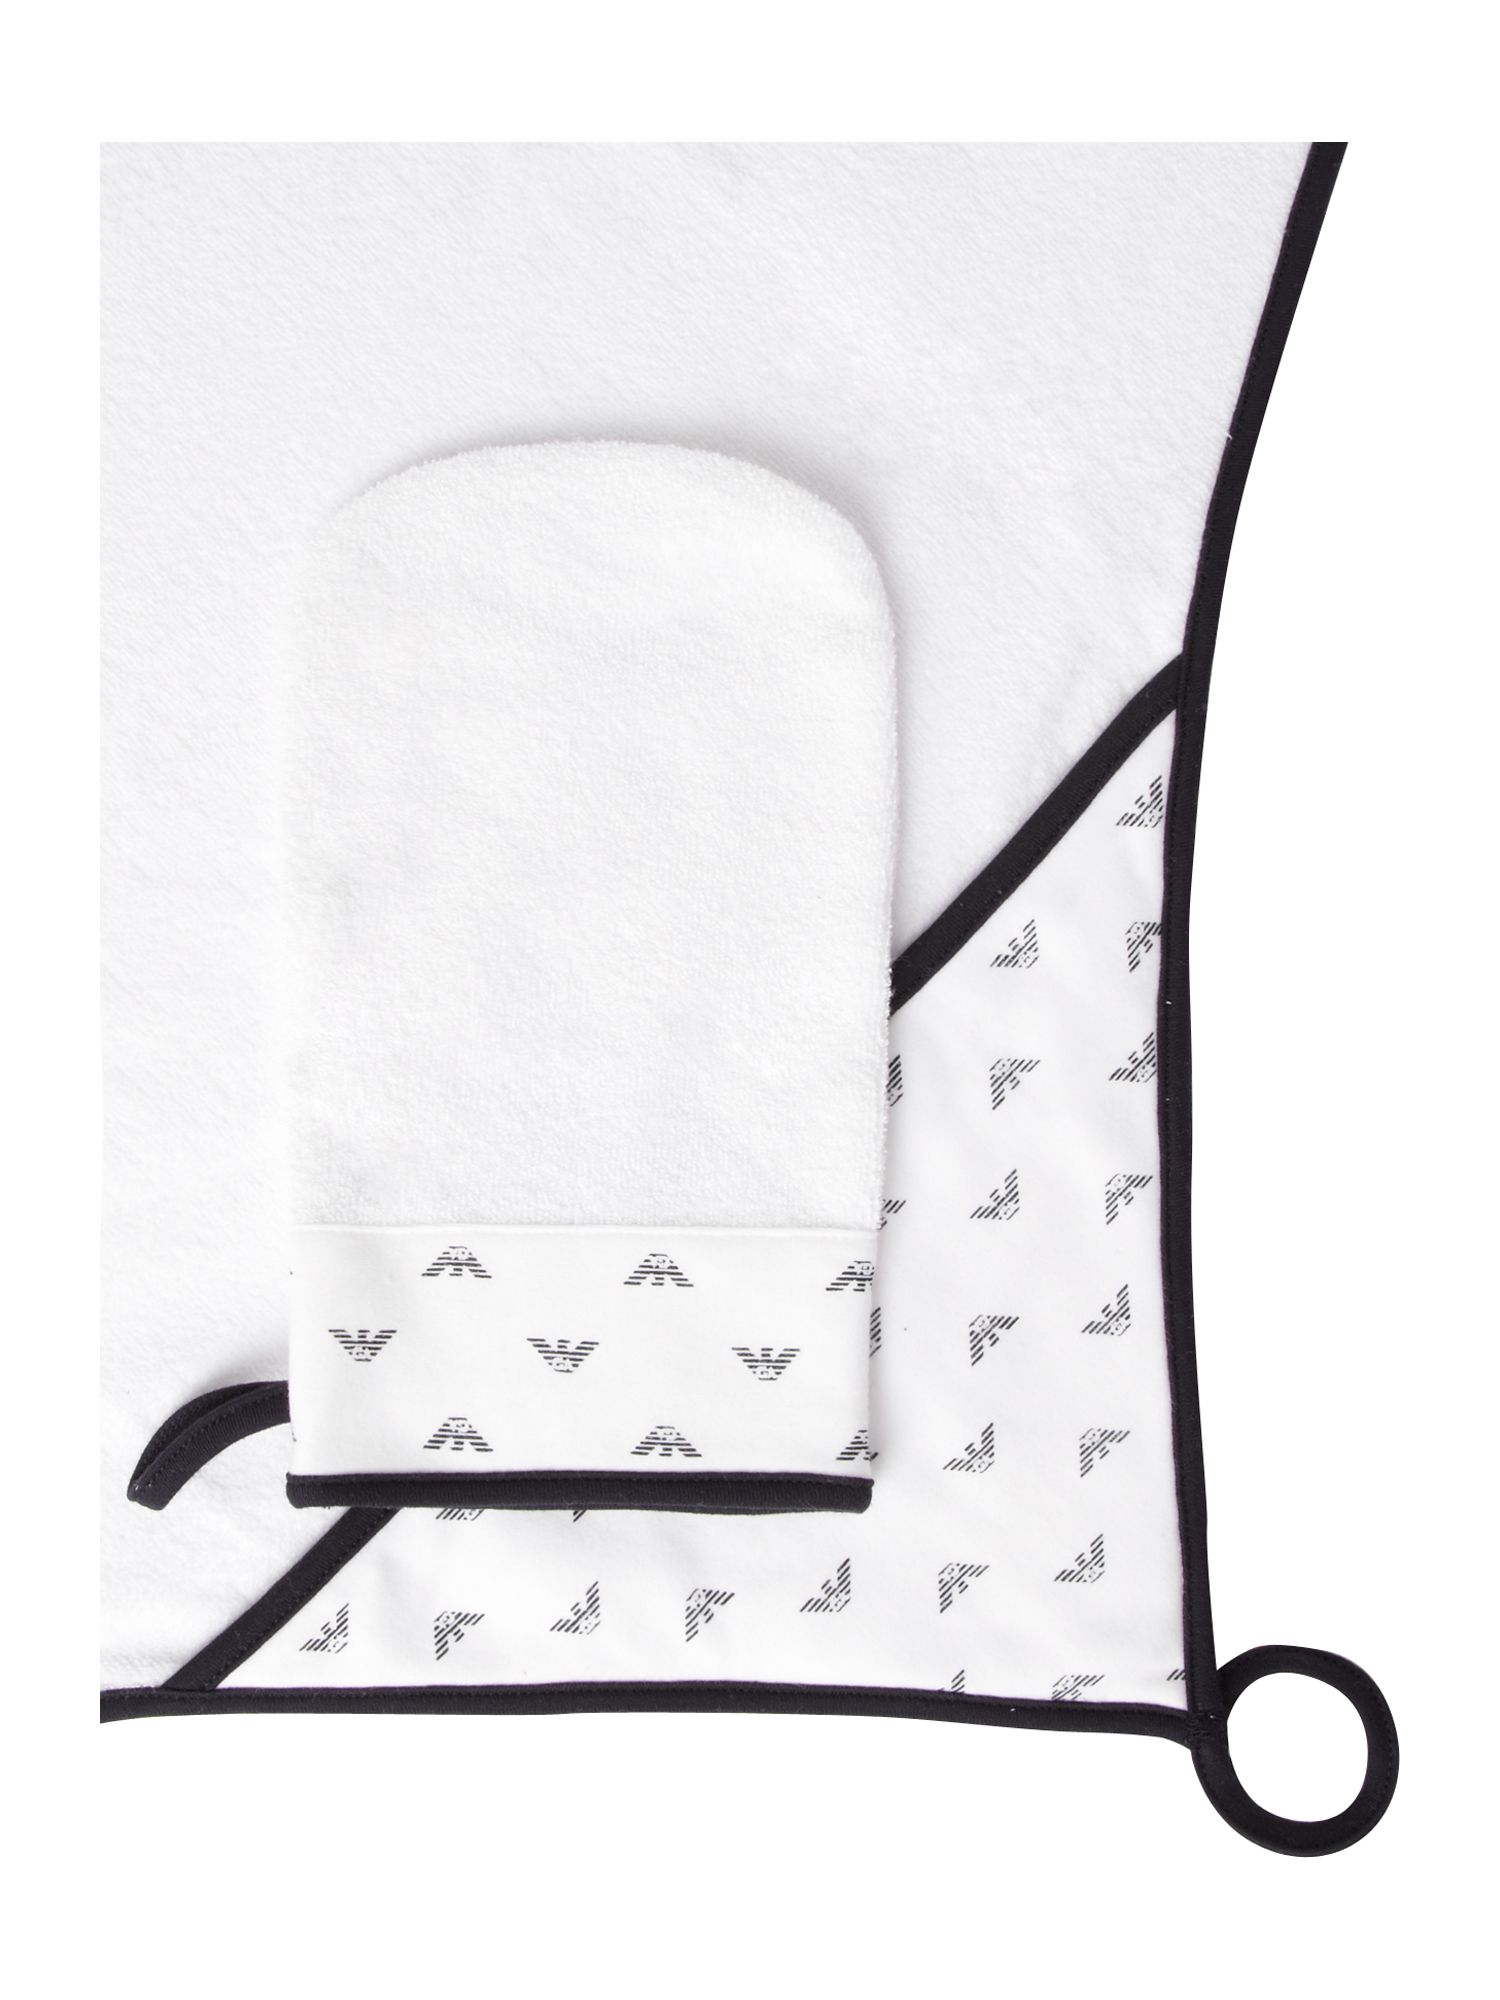 Hooded logo towel